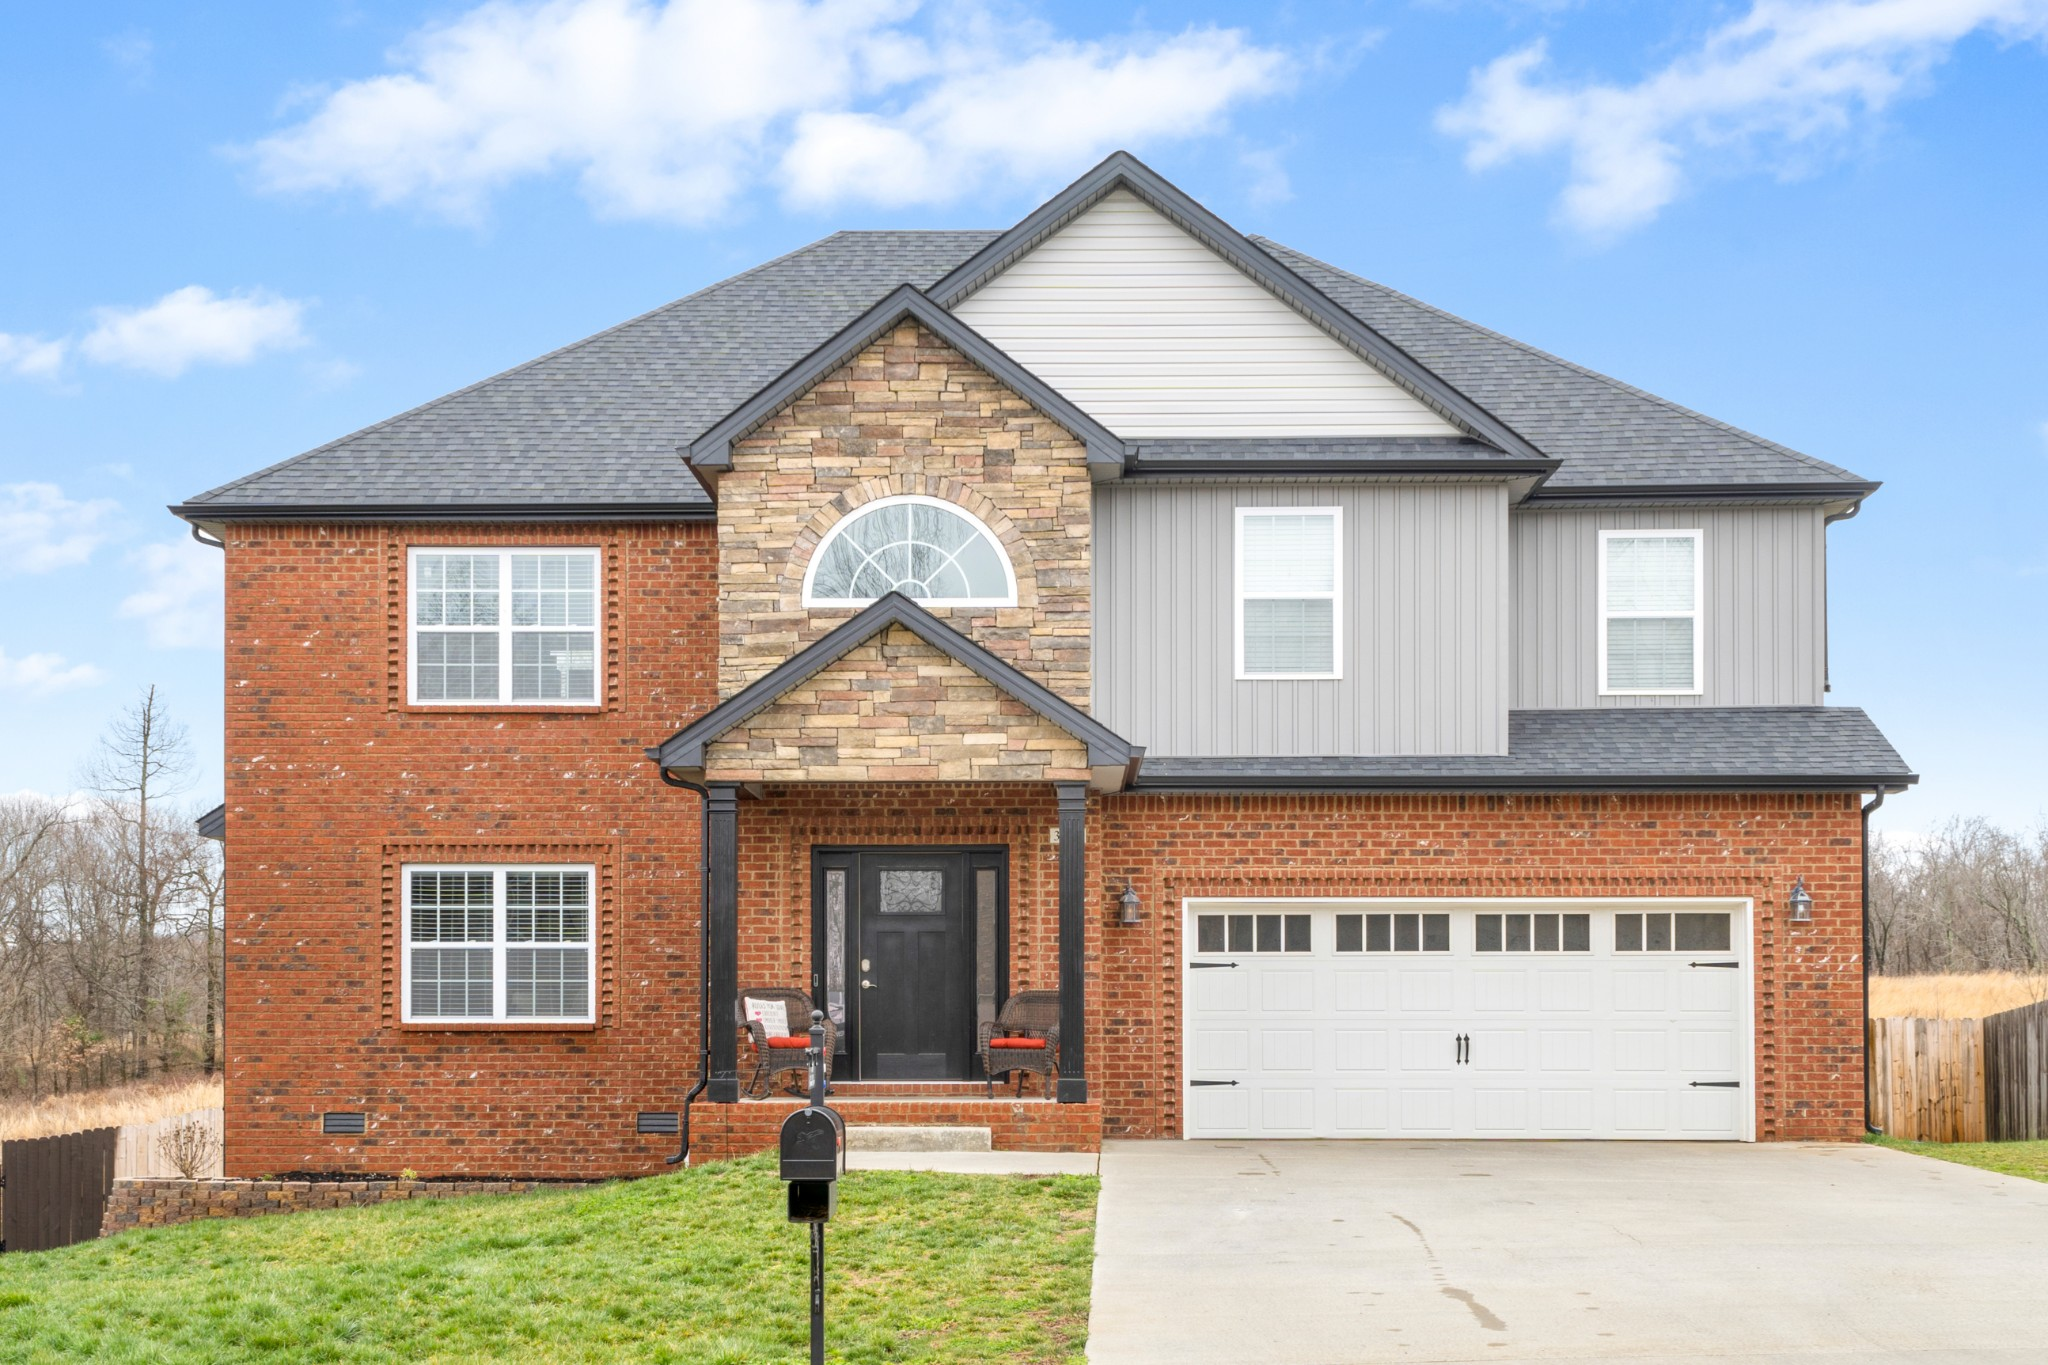 3164 Timberdale Dr, Clarksville, TN 37042 - Clarksville, TN real estate listing